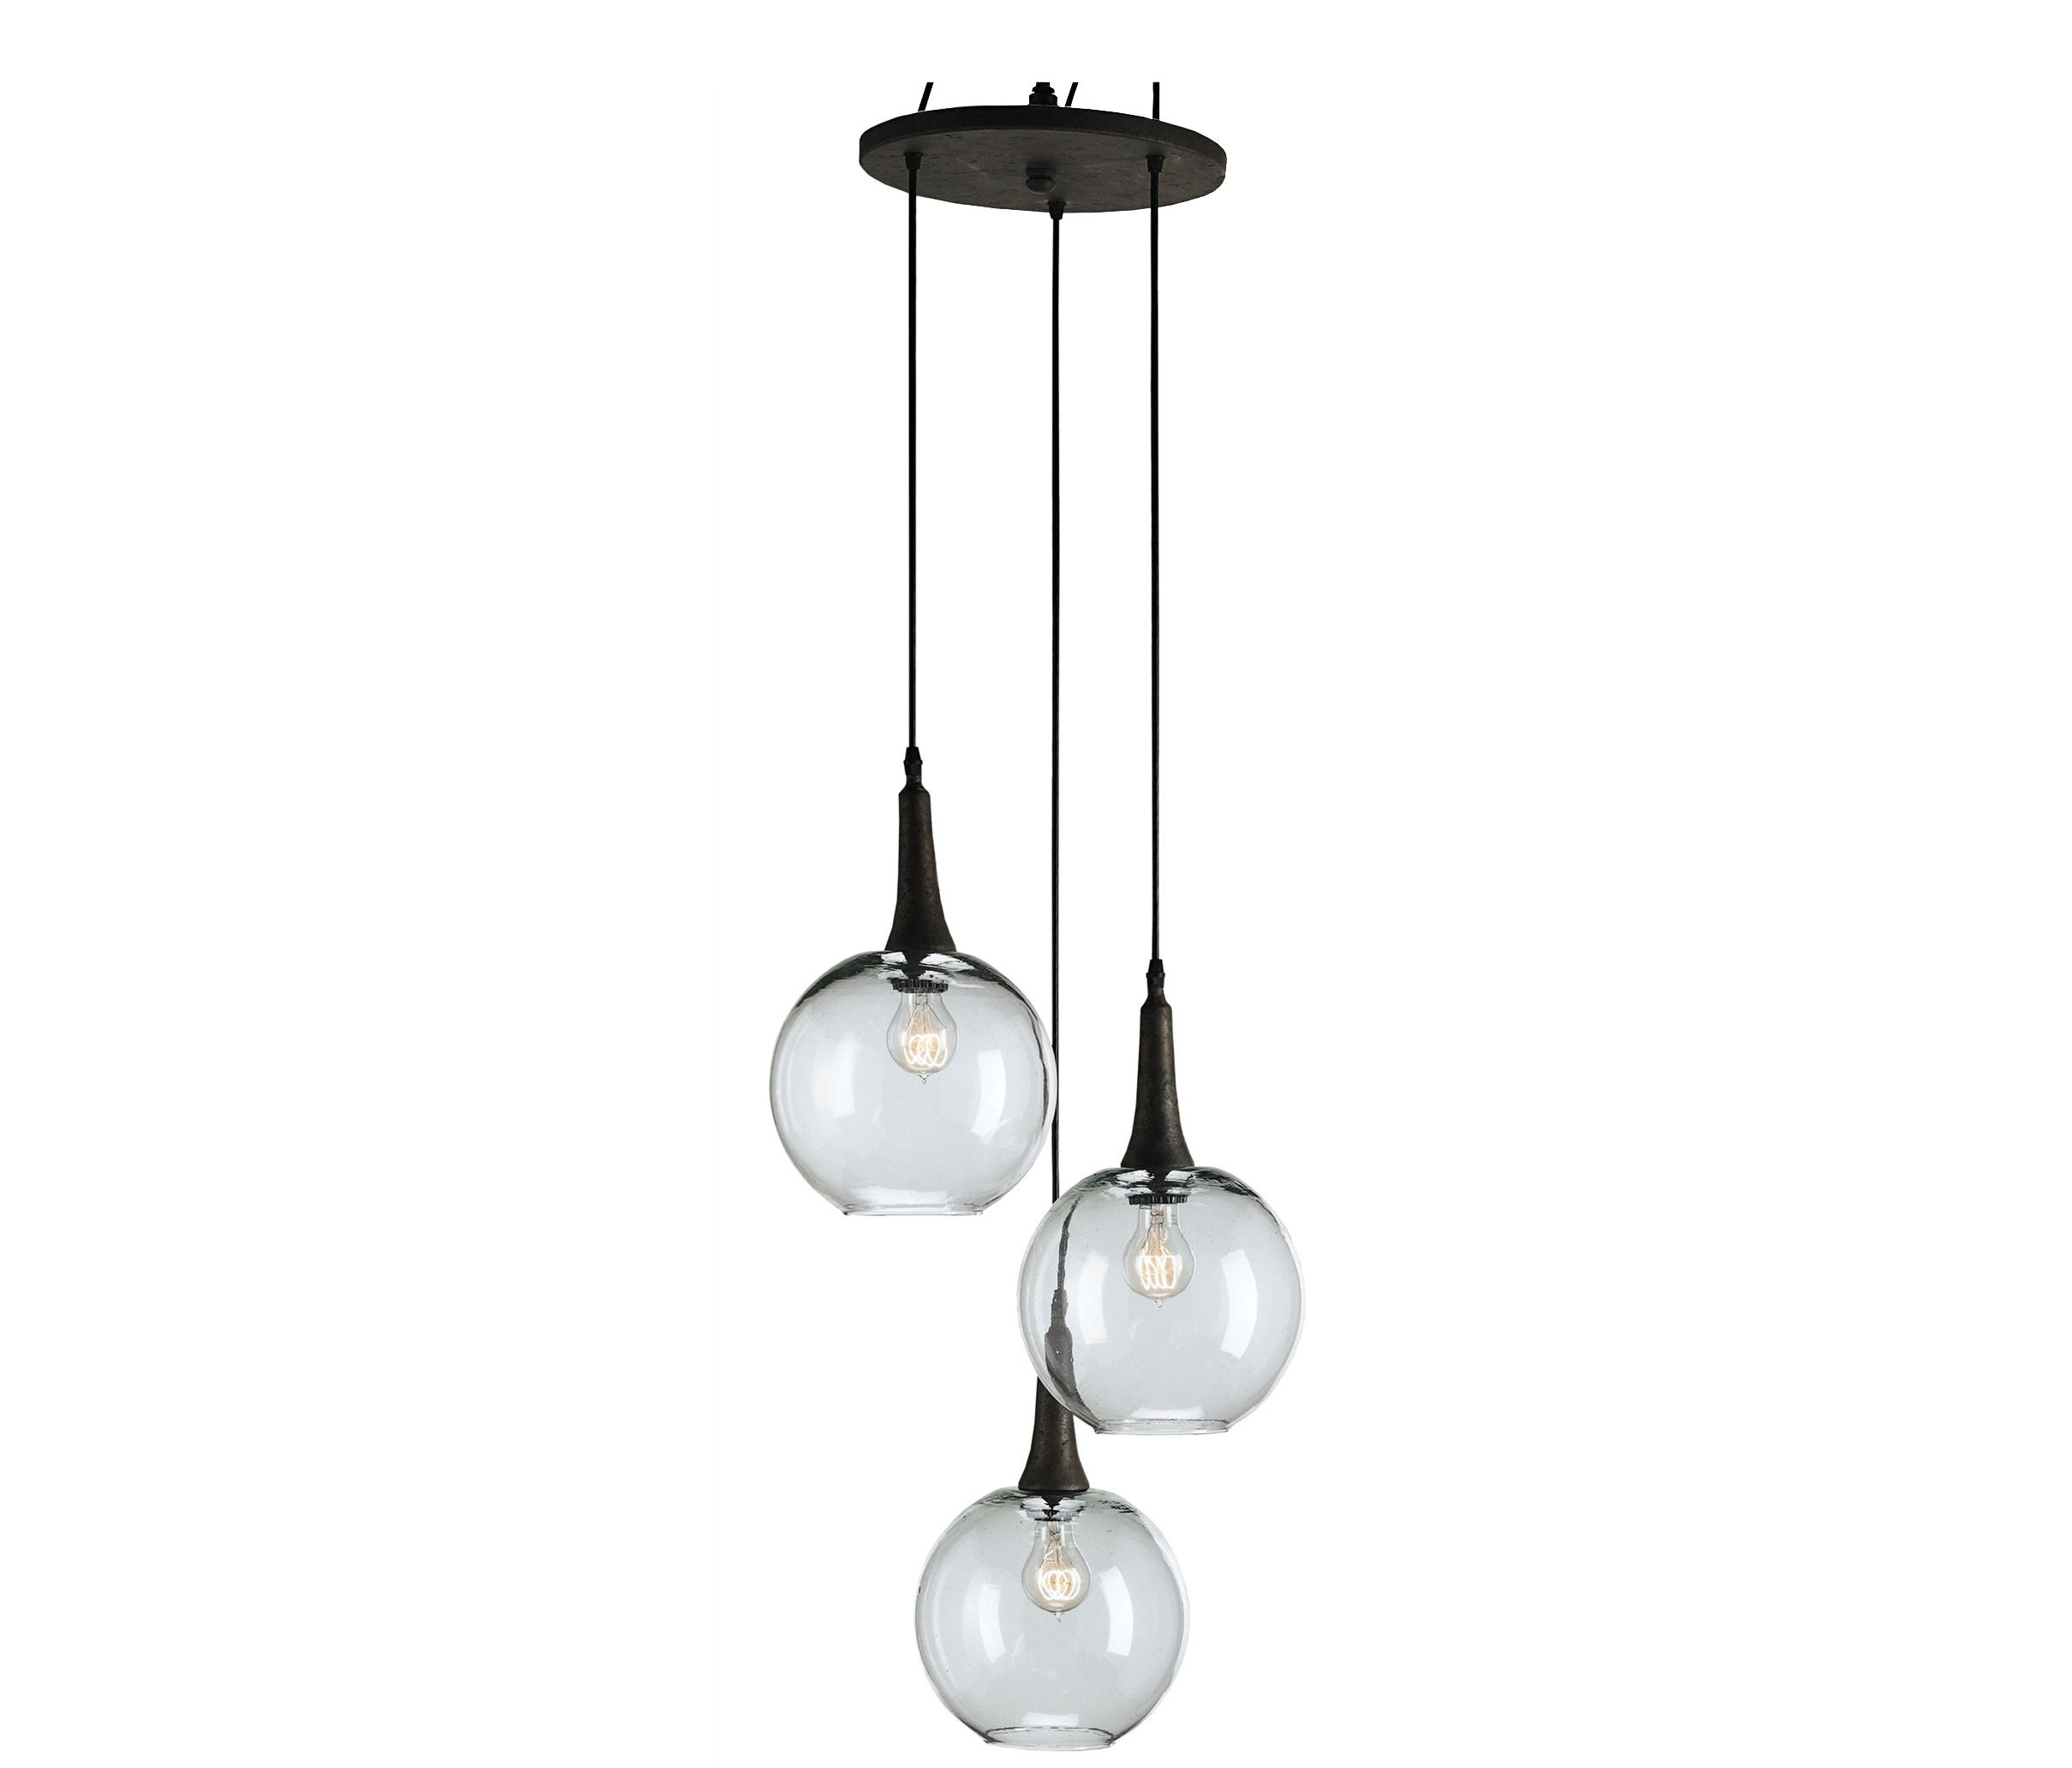 Beckett trio pendant suspended lights from currey company beckett trio pendant by currey company suspended lights aloadofball Choice Image